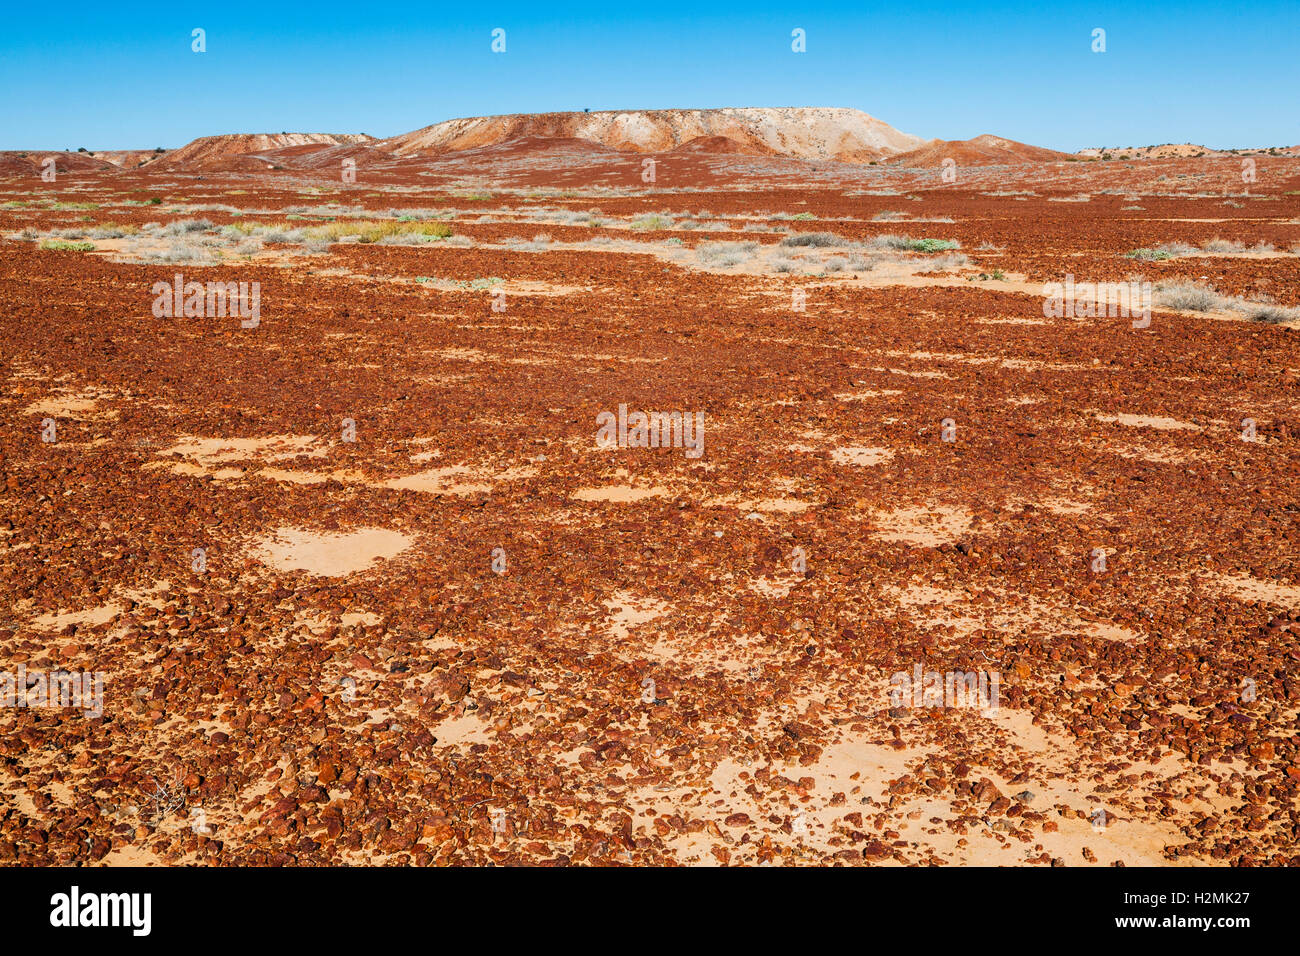 Gibber Plain in Sturt's Stony Desert at the Birdsville Track, South Australia - Stock Image